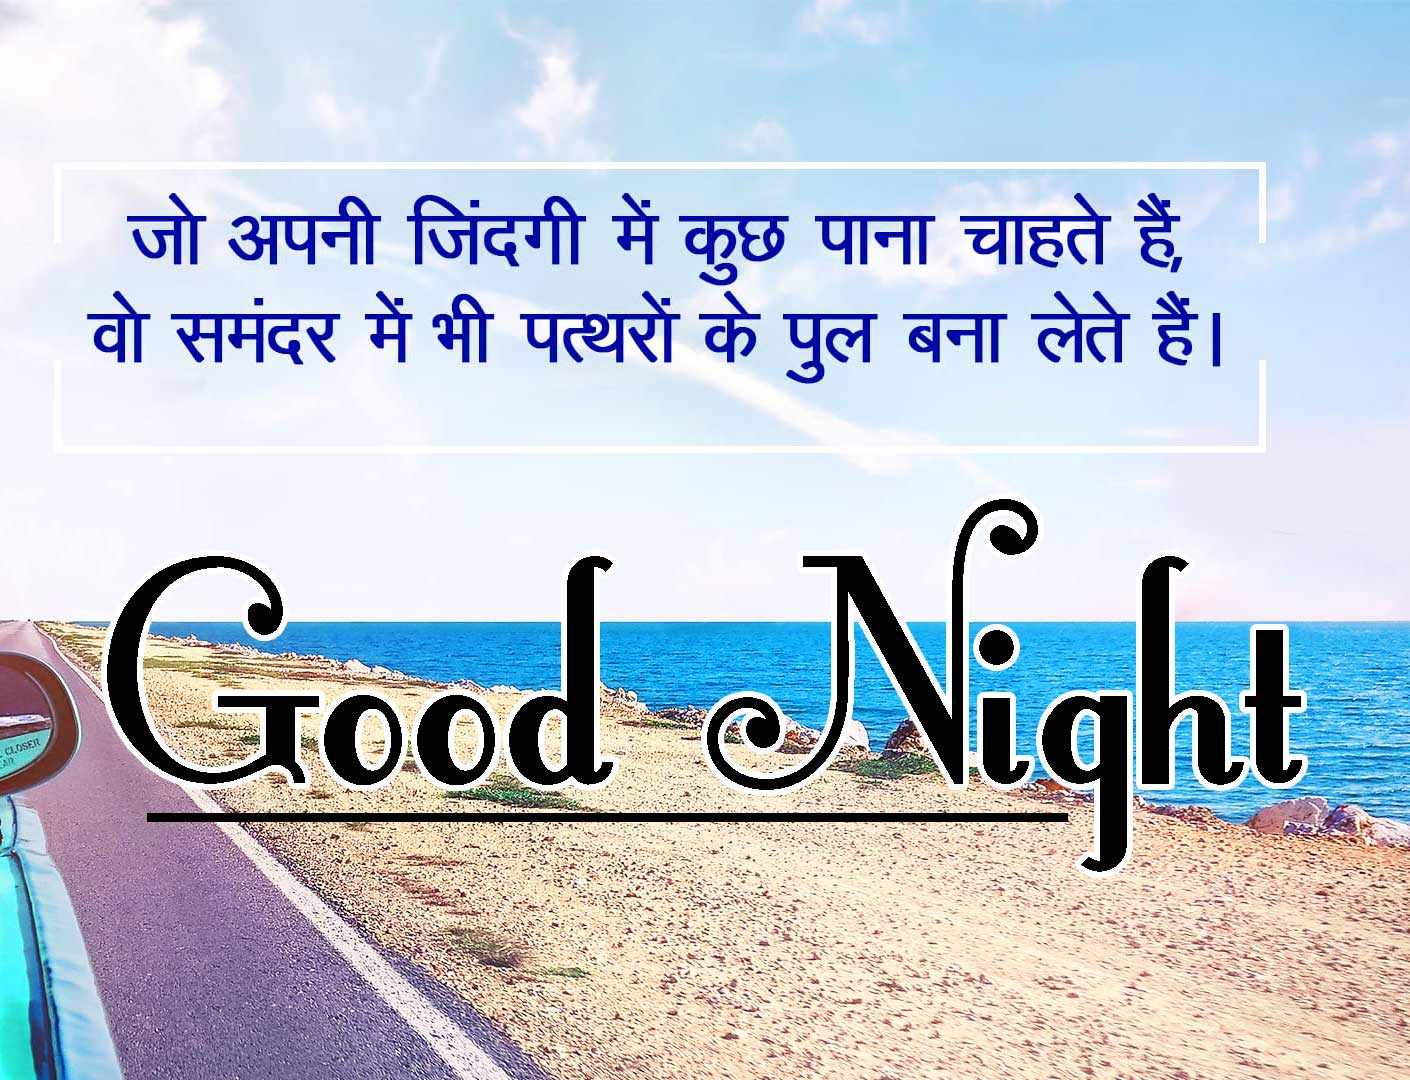 Good Night Images With Hindi Shayari Pics Free Download Free